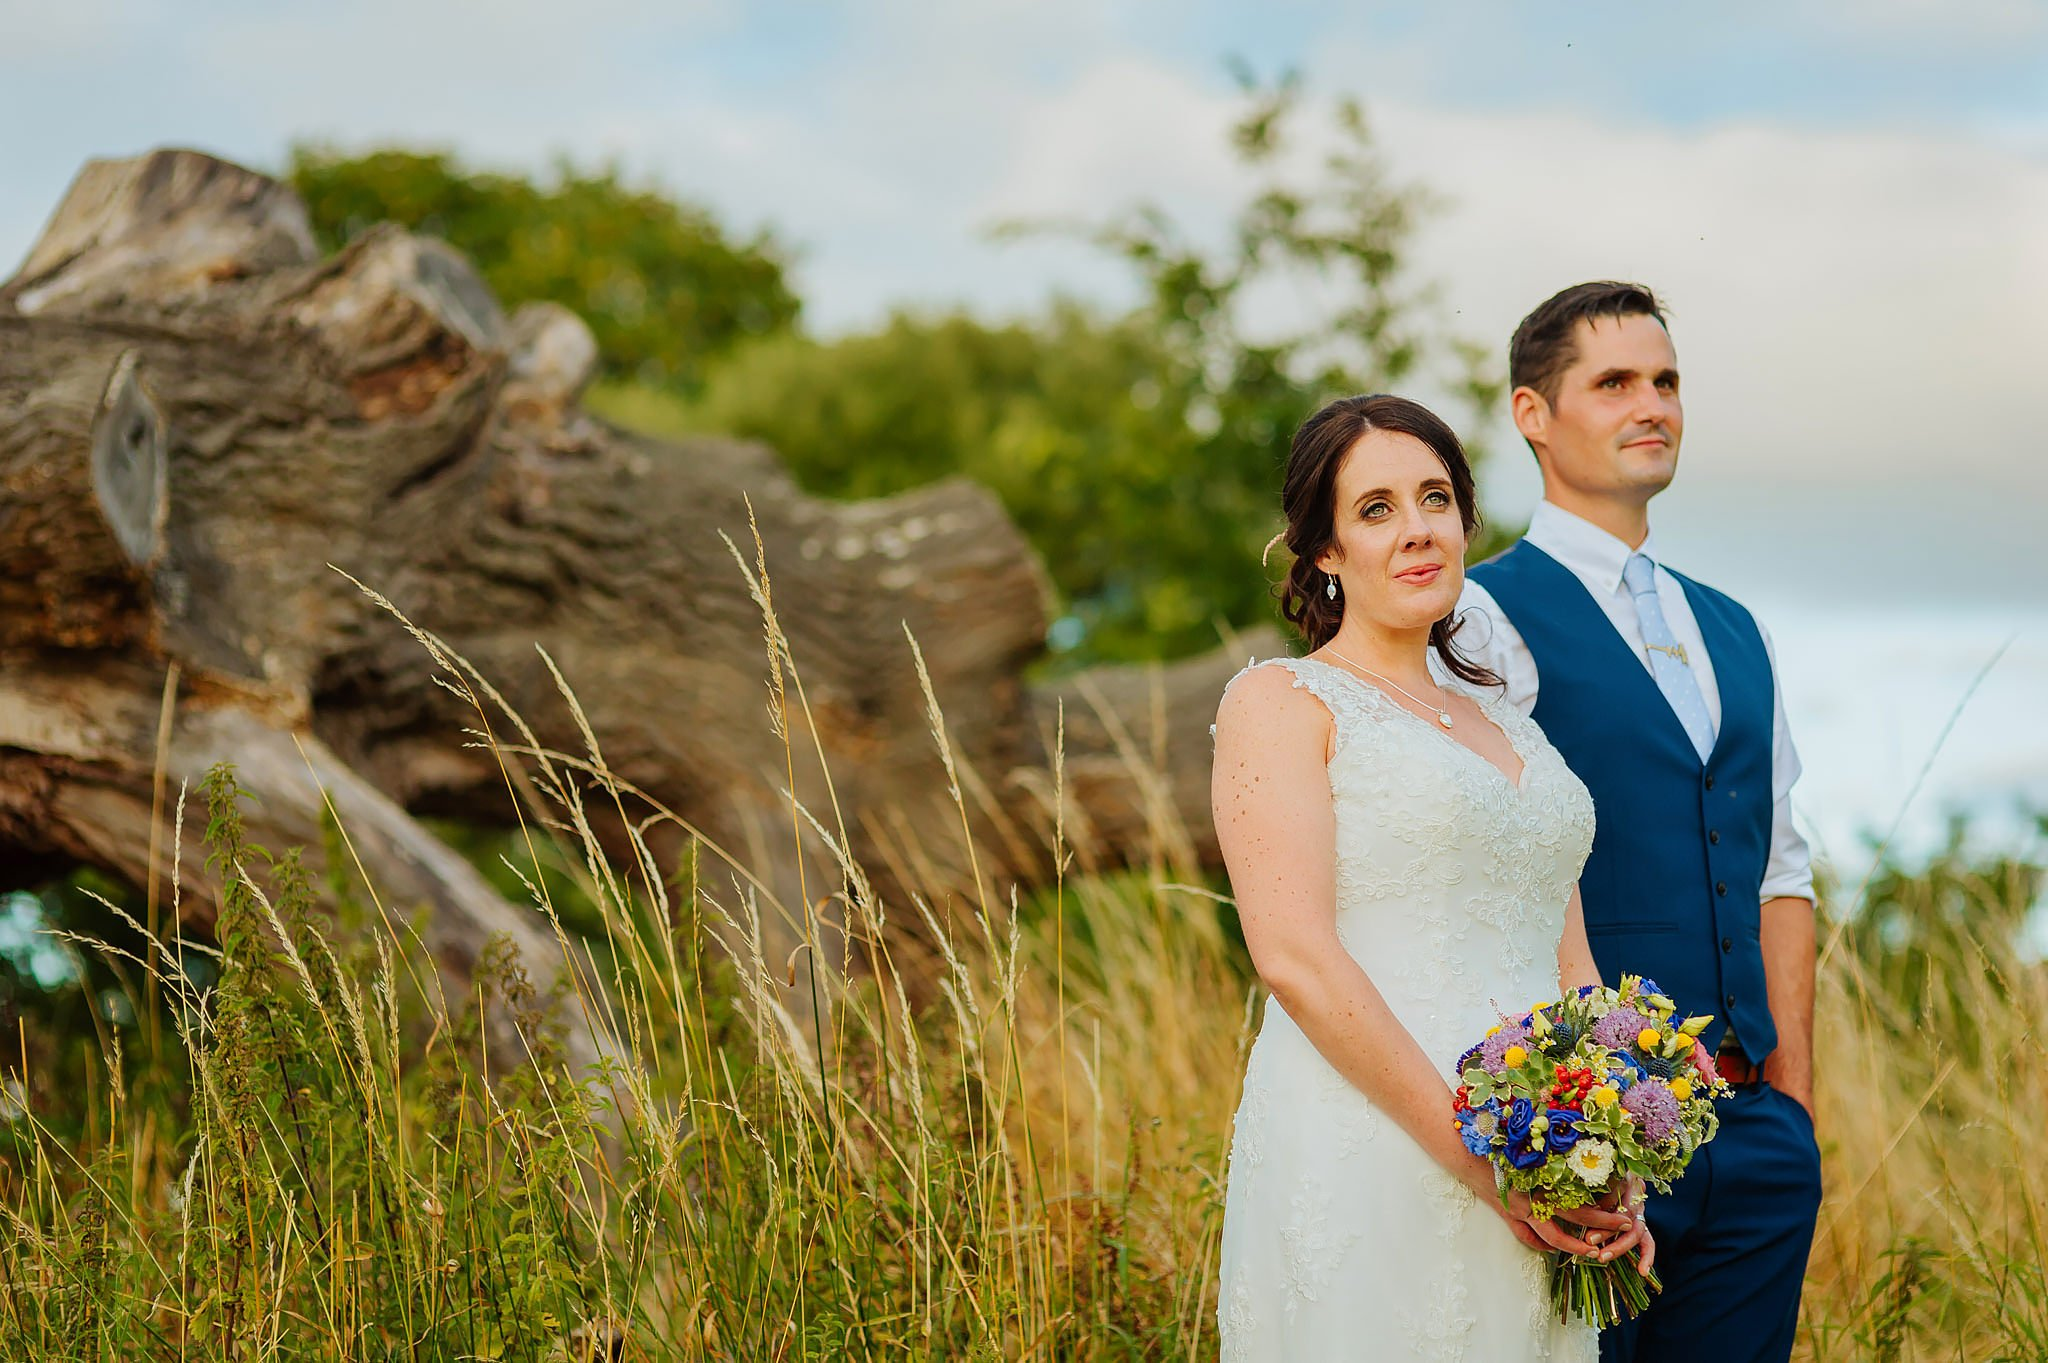 Wedding photography at Hellens Manor in Herefordshire, West Midlands | Shelley + Ian 113